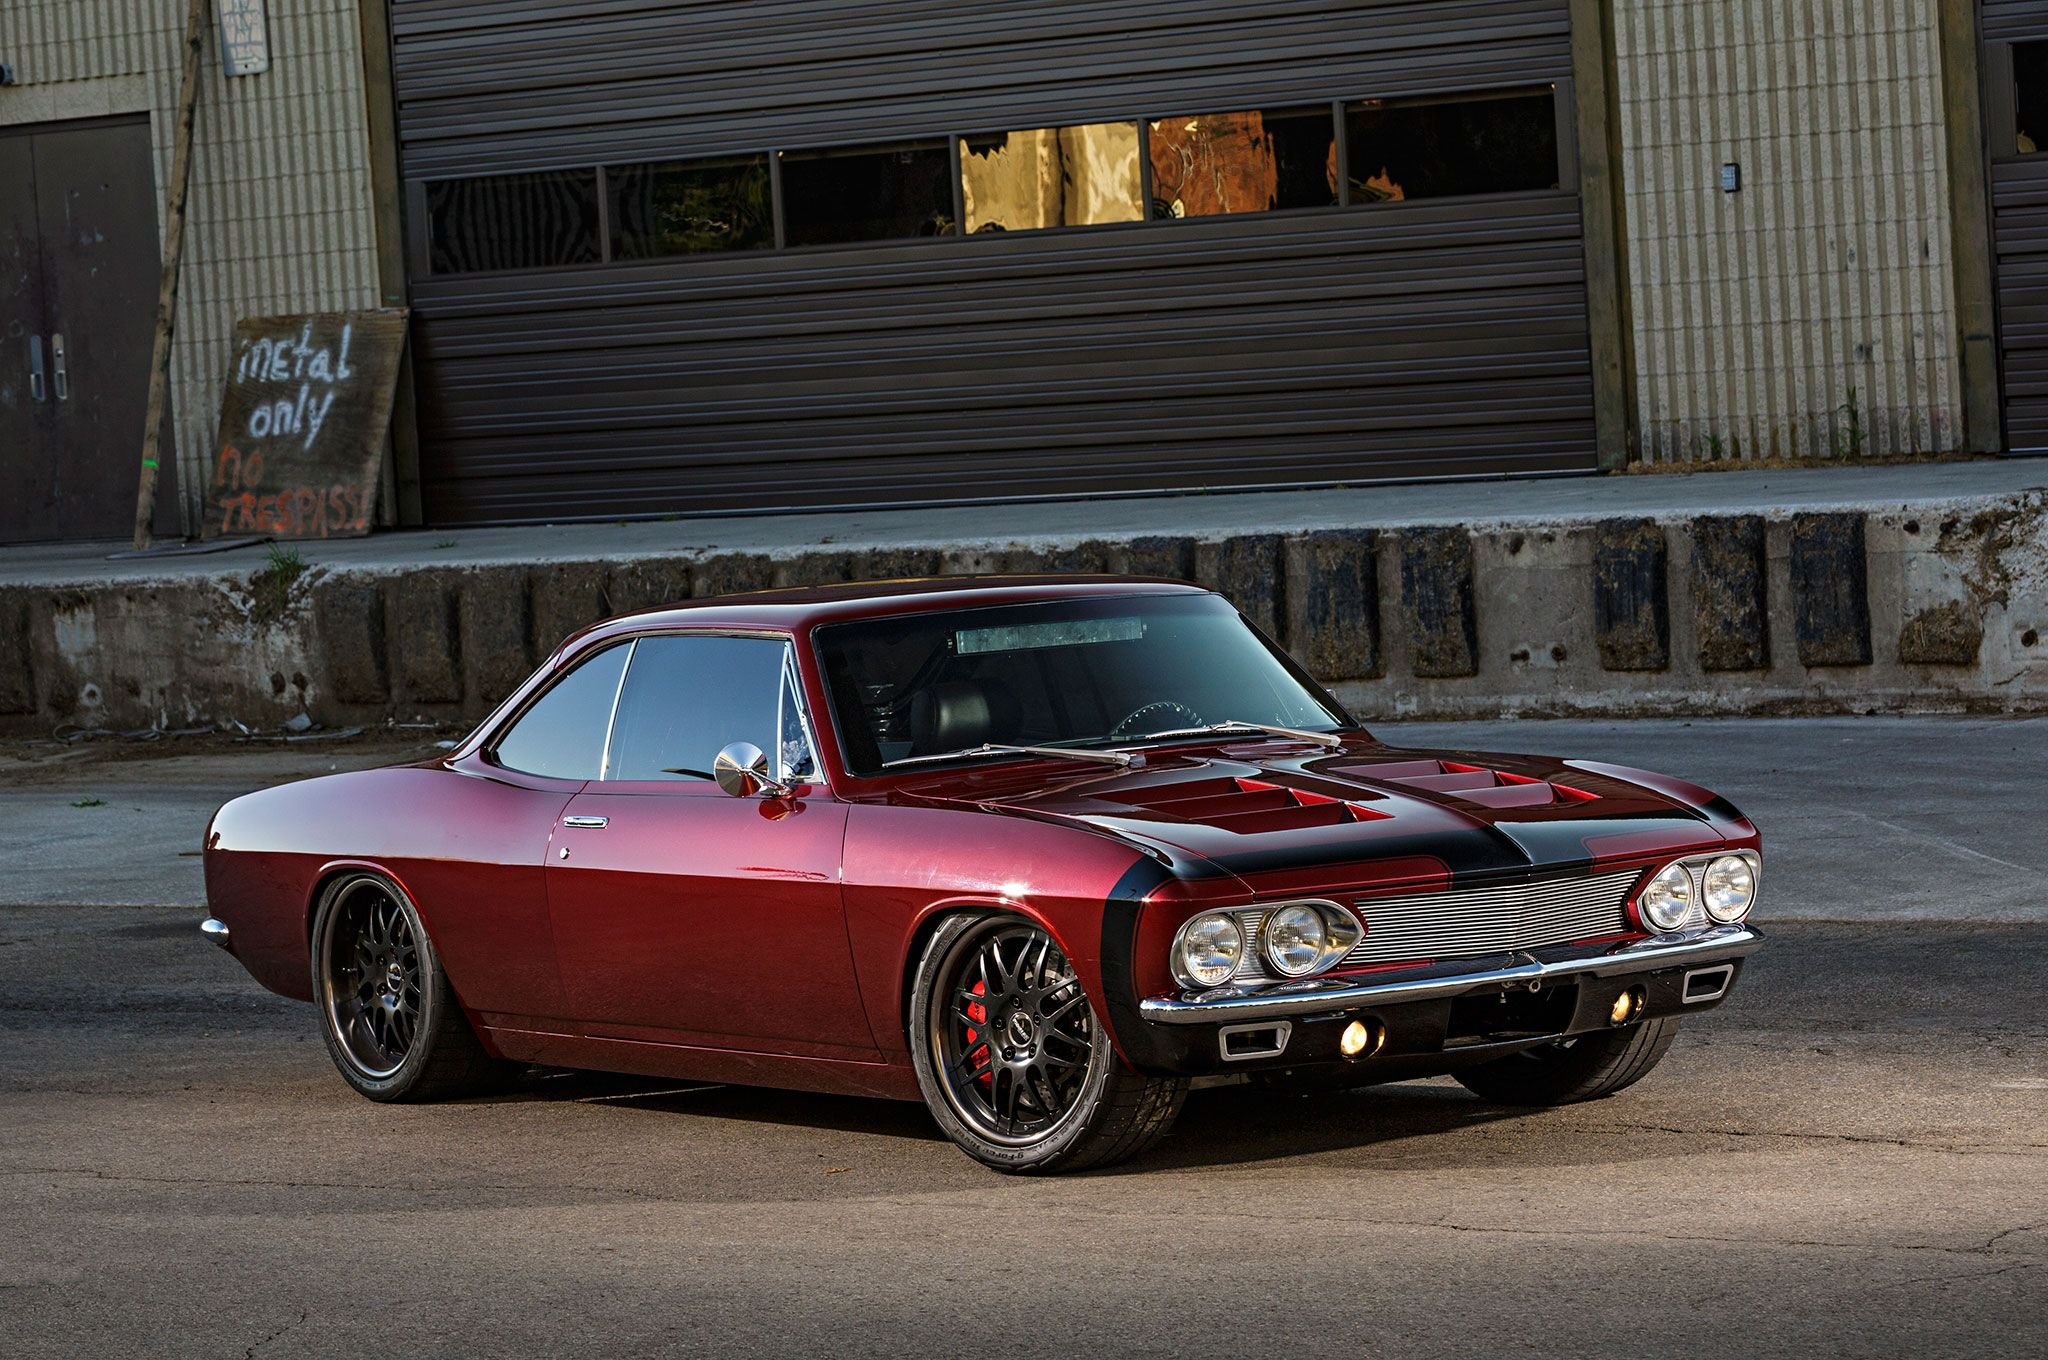 Chevy Chevelle 2016 >> Pro Touring 1966 Chevy Corvair cars modified wallpaper | 2048x1360 | 1061913 | WallpaperUP